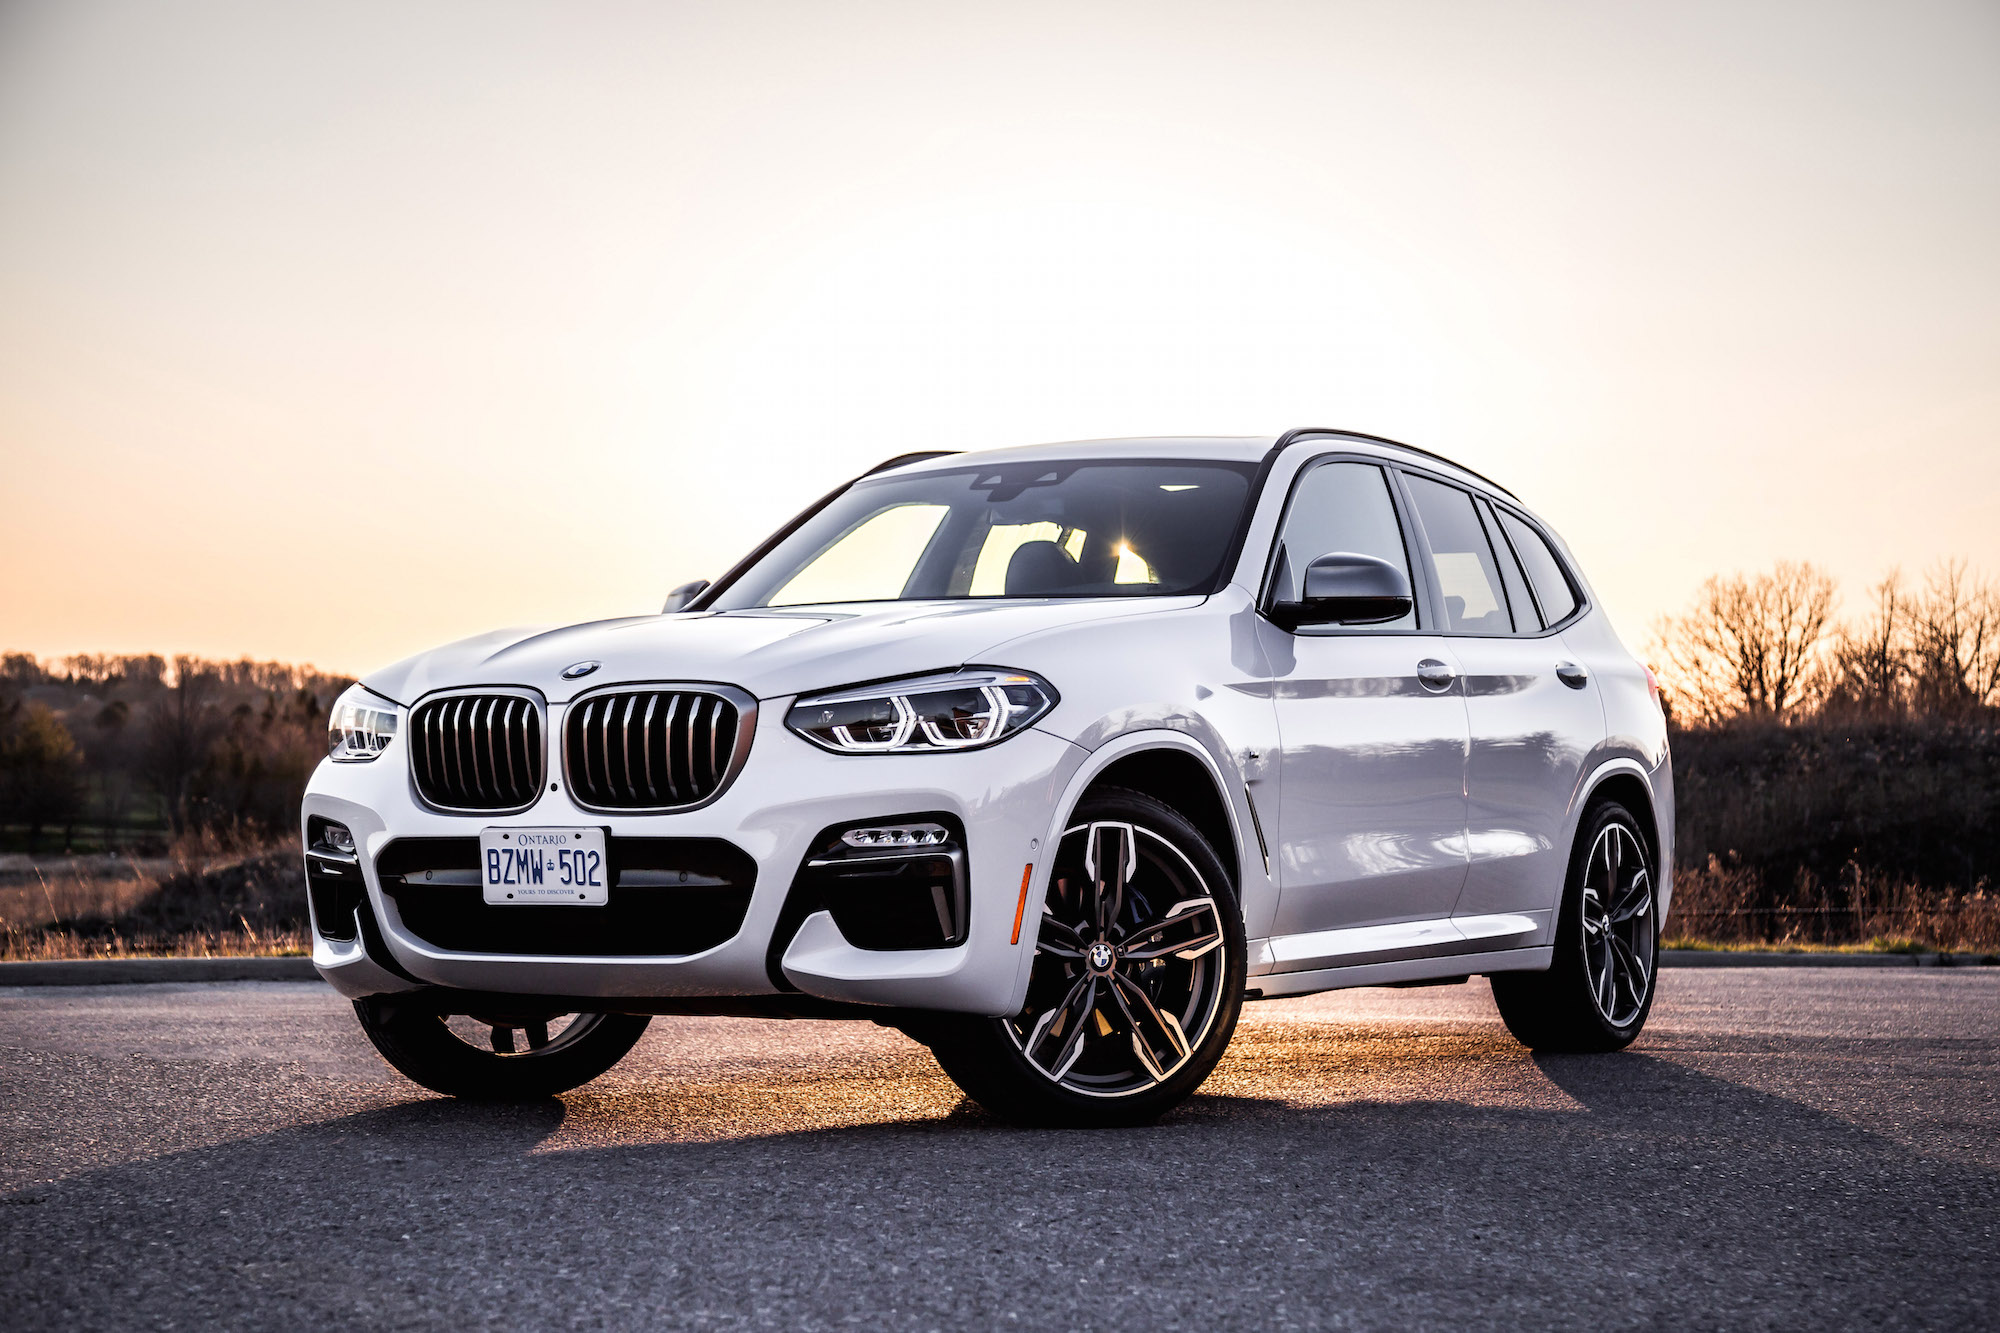 2018 Bmw X3 M40i Canada Review